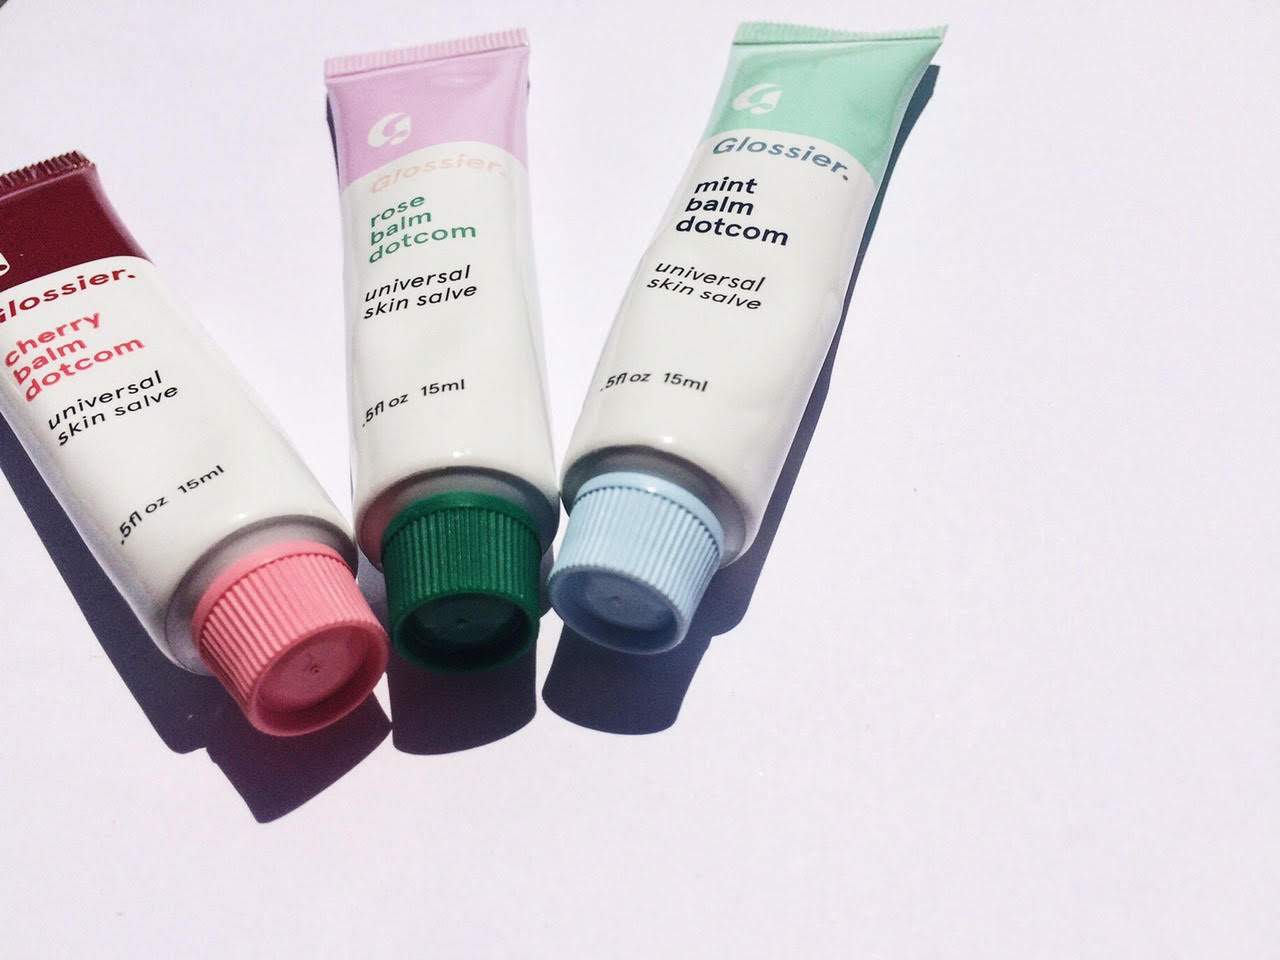 Glossier Balm dotcom review